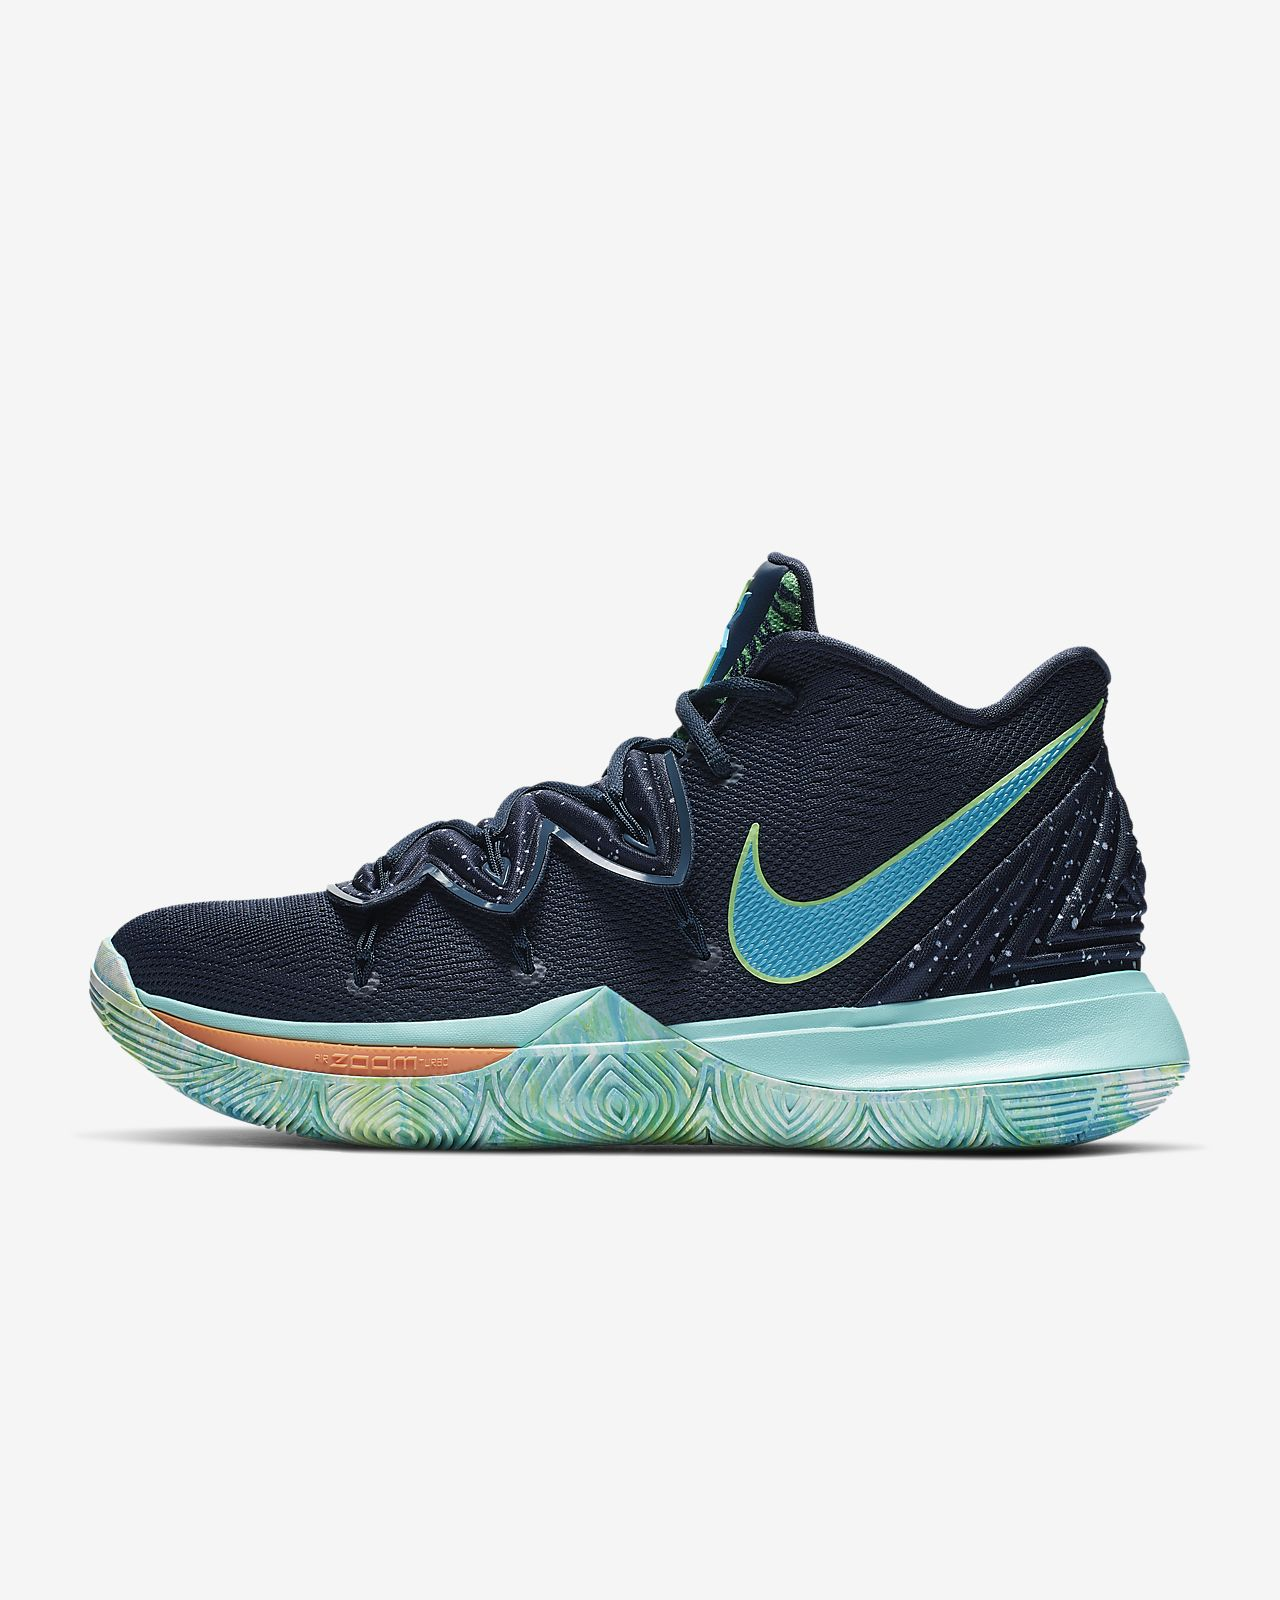 separation shoes 34f33 3e37b Low Resolution Chaussure Kyrie 5 Chaussure Kyrie 5